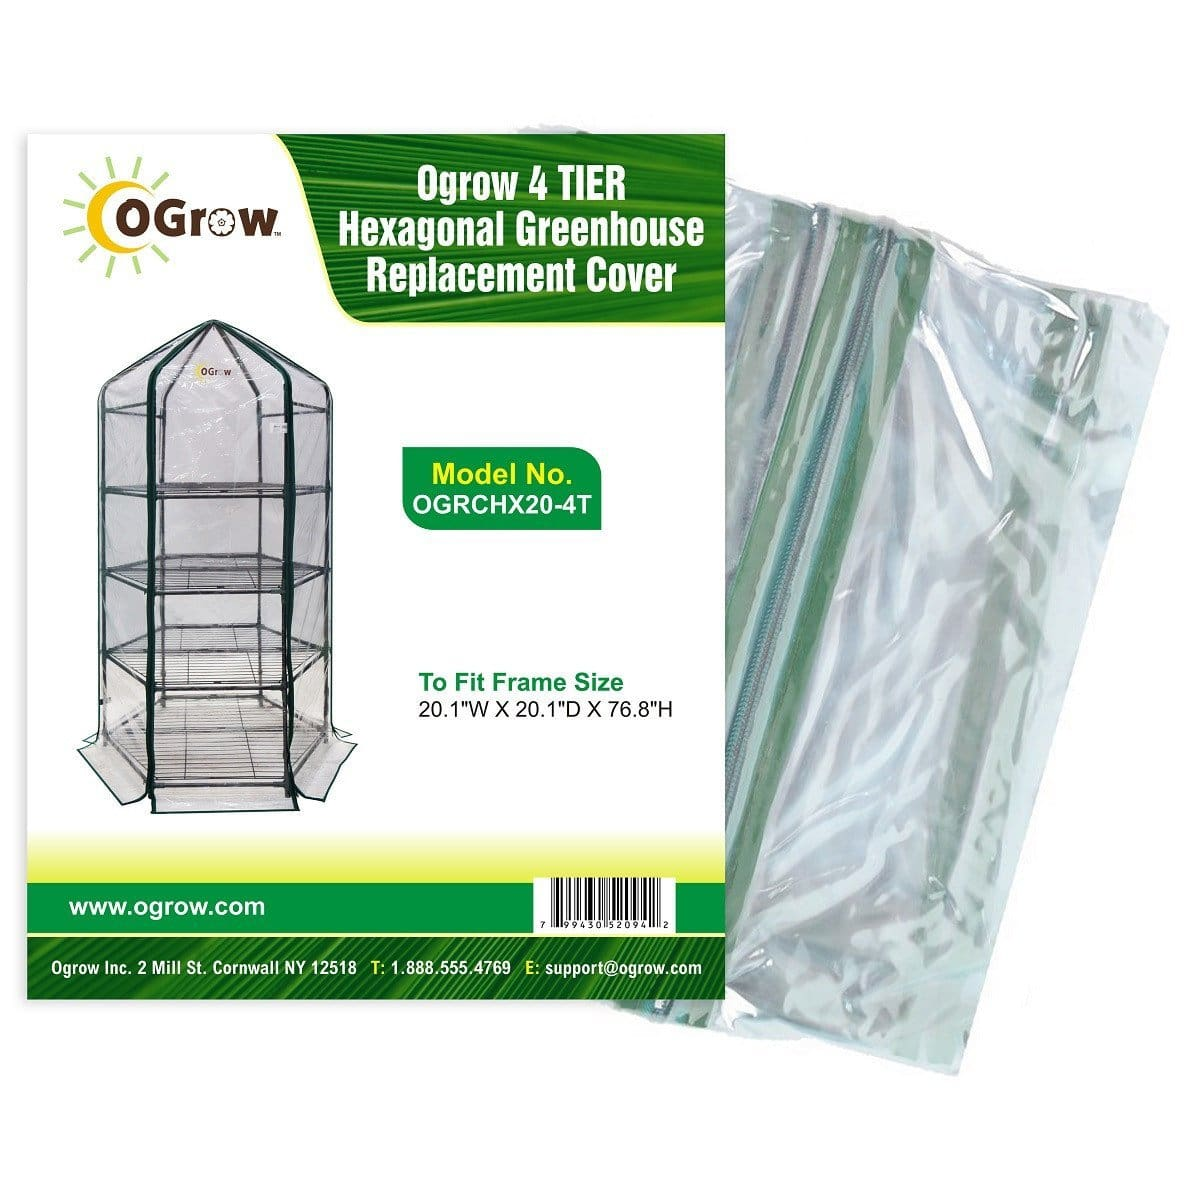 oGrow 4 Tier Hexagonal Greenhouse Replacement Cover - To Fit Frame Size 20 1W X 20 1D X 76 8H - Greenhouses & Accessories